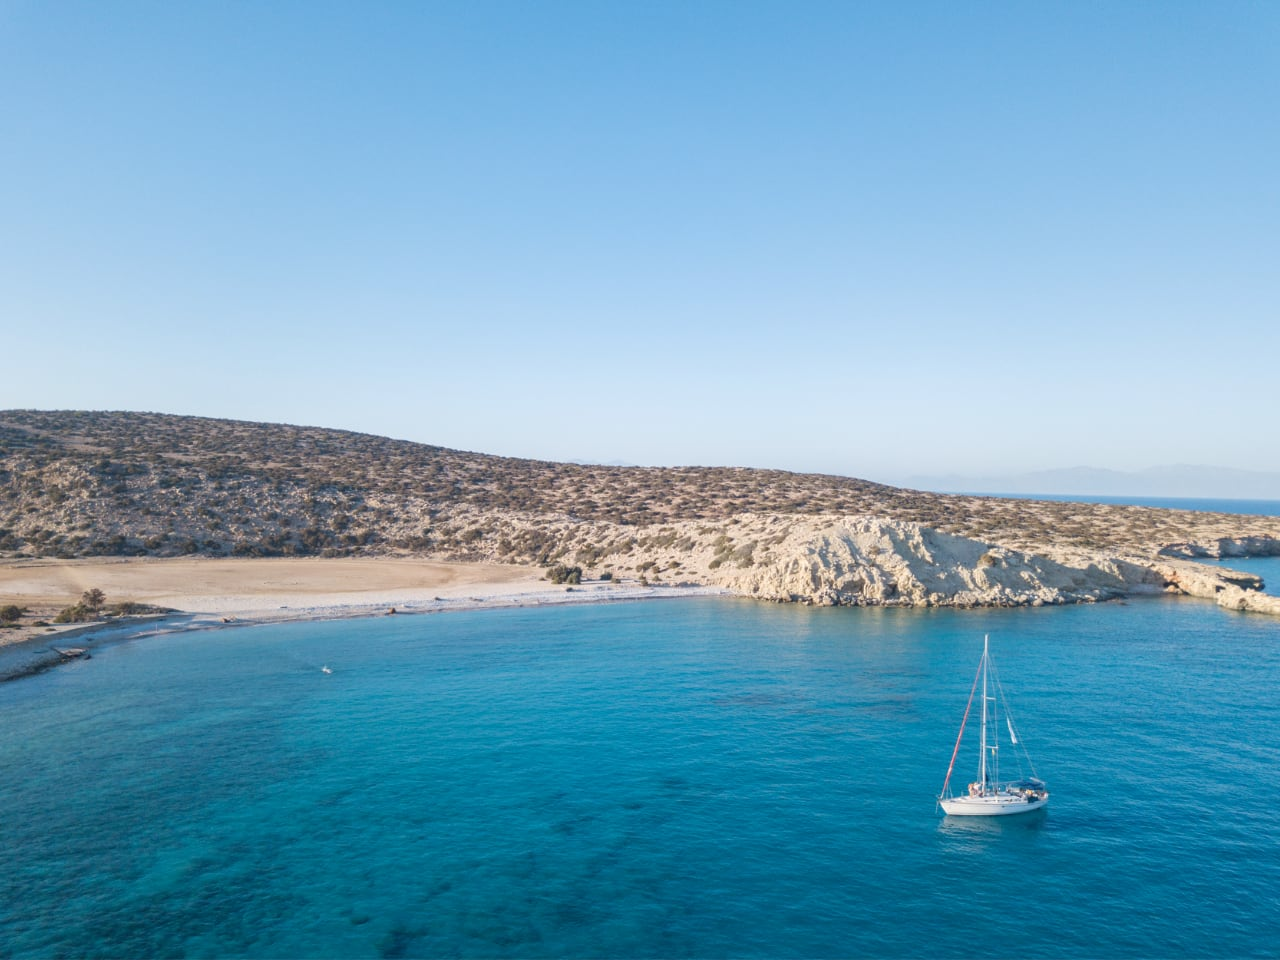 An amazing Sailing & Sea Kayak Trip, Gavdos Island & Best Beaches South Chania, sailing sea kayak Crete, sailing sea kayaking gavdos island, sailing sea kayaking south chania beaches, loutro sailing sea kayak, sfakia port sailing sea kayak, best sailing activities crete